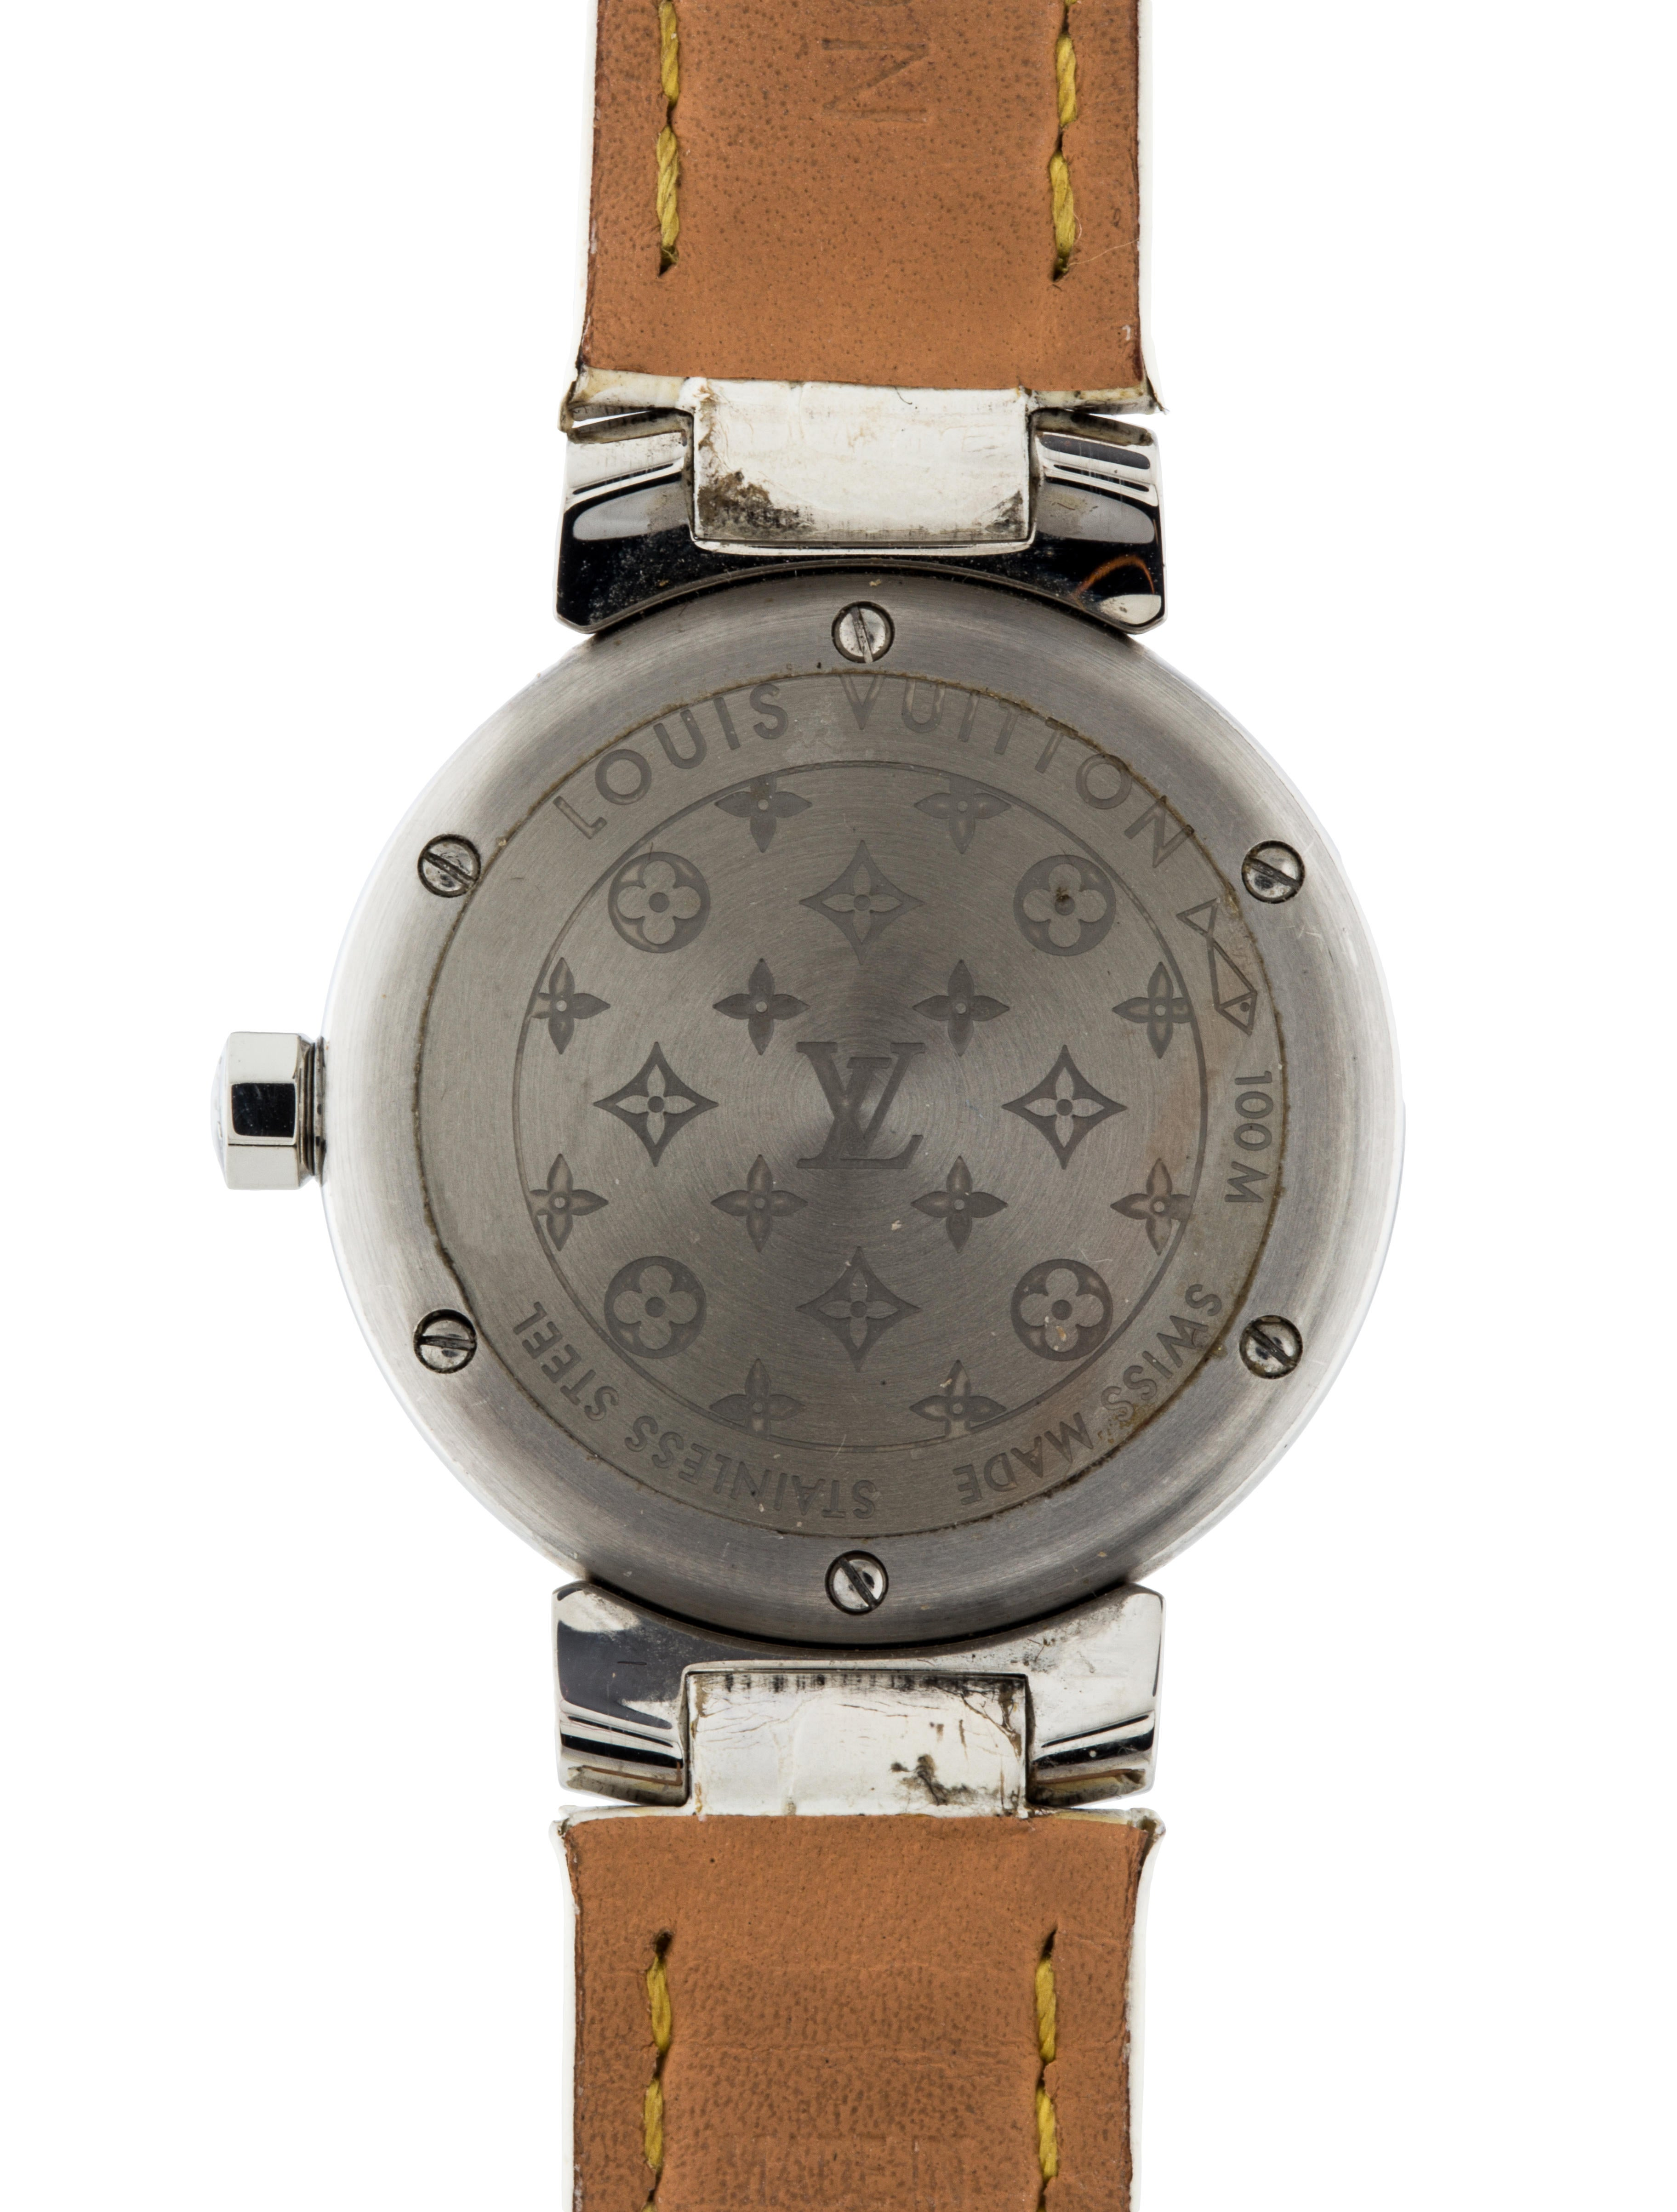 Louis Vuitton Tambour Watch Strap Lou105783 The Realreal